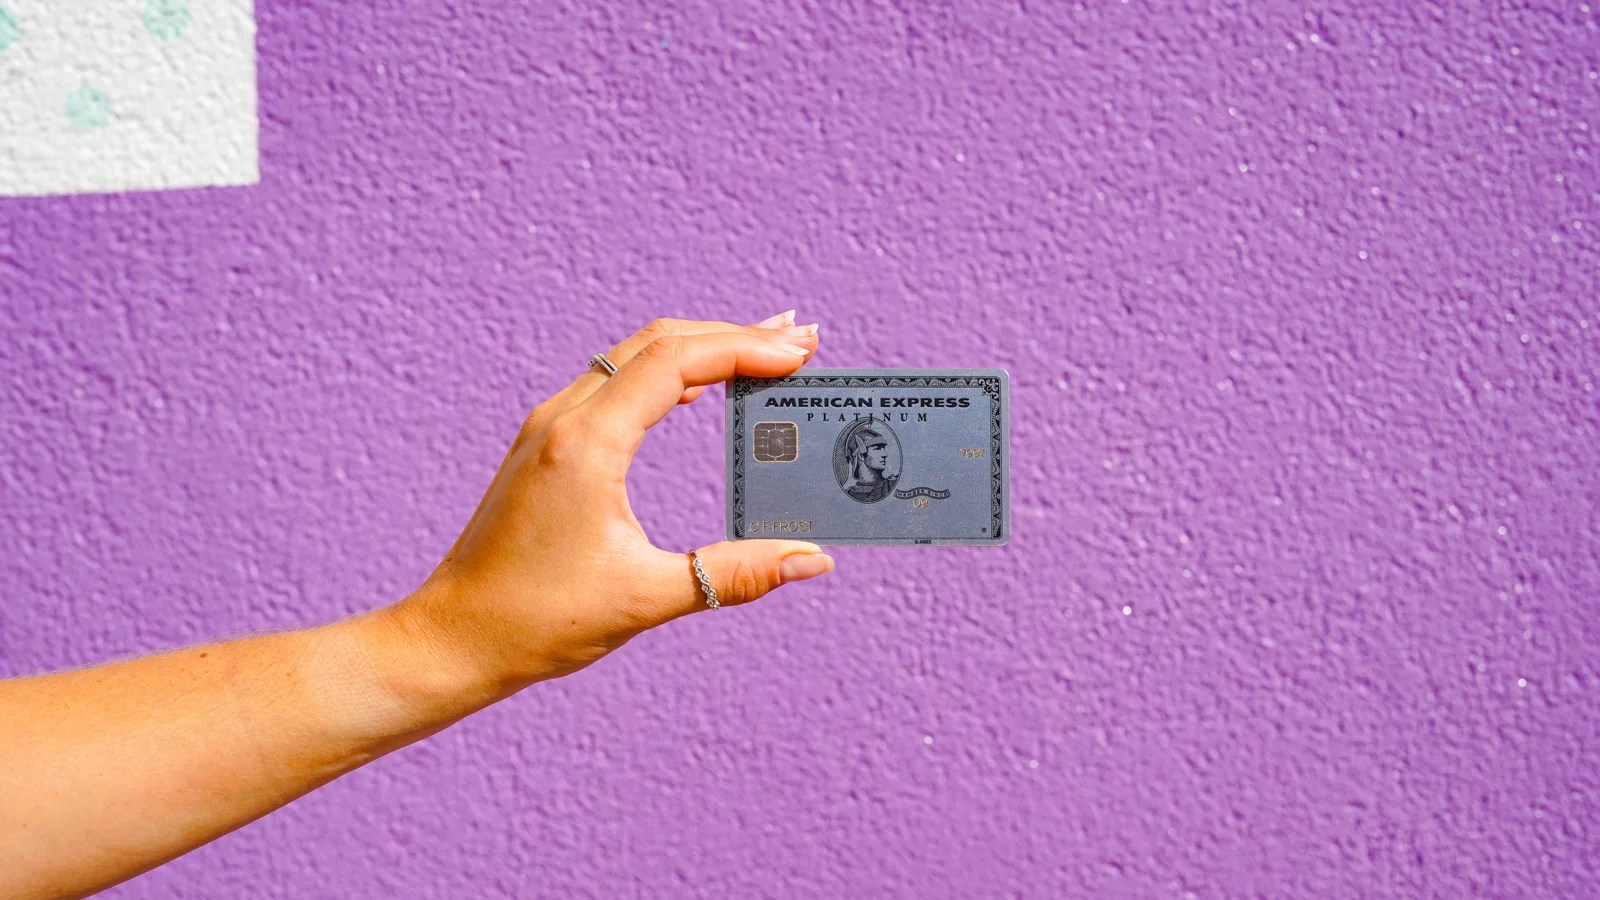 Targeted: Get up to 1x Extra Points for All Spending on Amex Cards